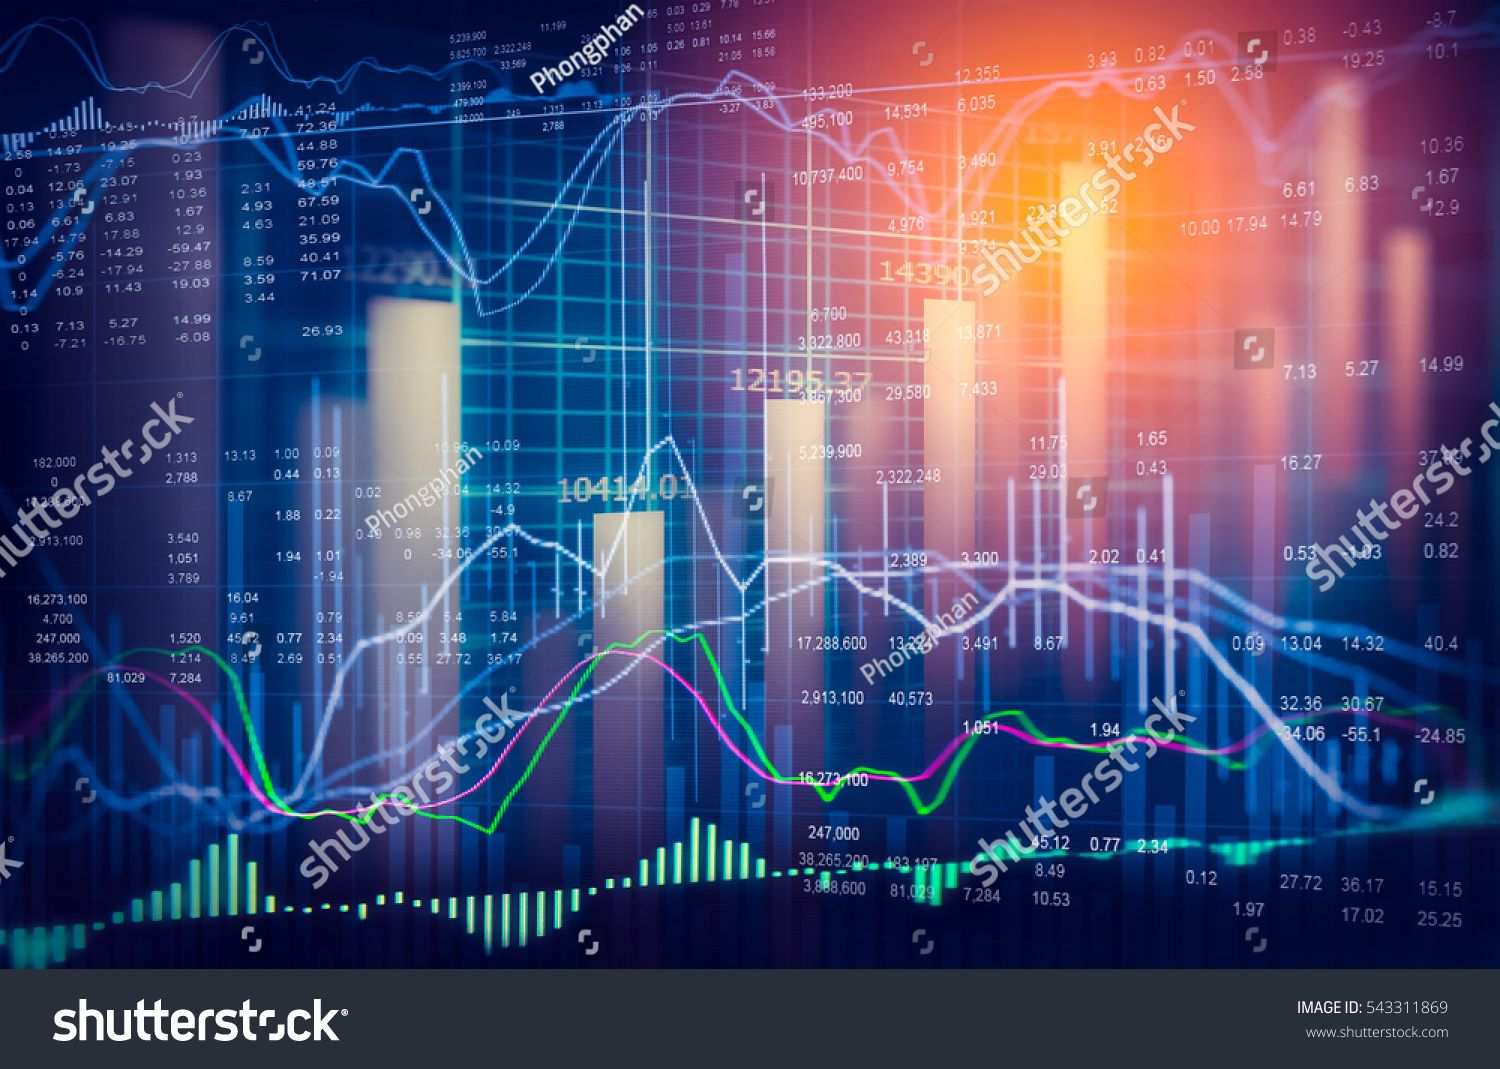 Stock Market Or Forex Trading Graph And Candlestick Chart Suitable For Financial Investment Concept Economy Trends Back Stock Market Dow Jones Index Investing